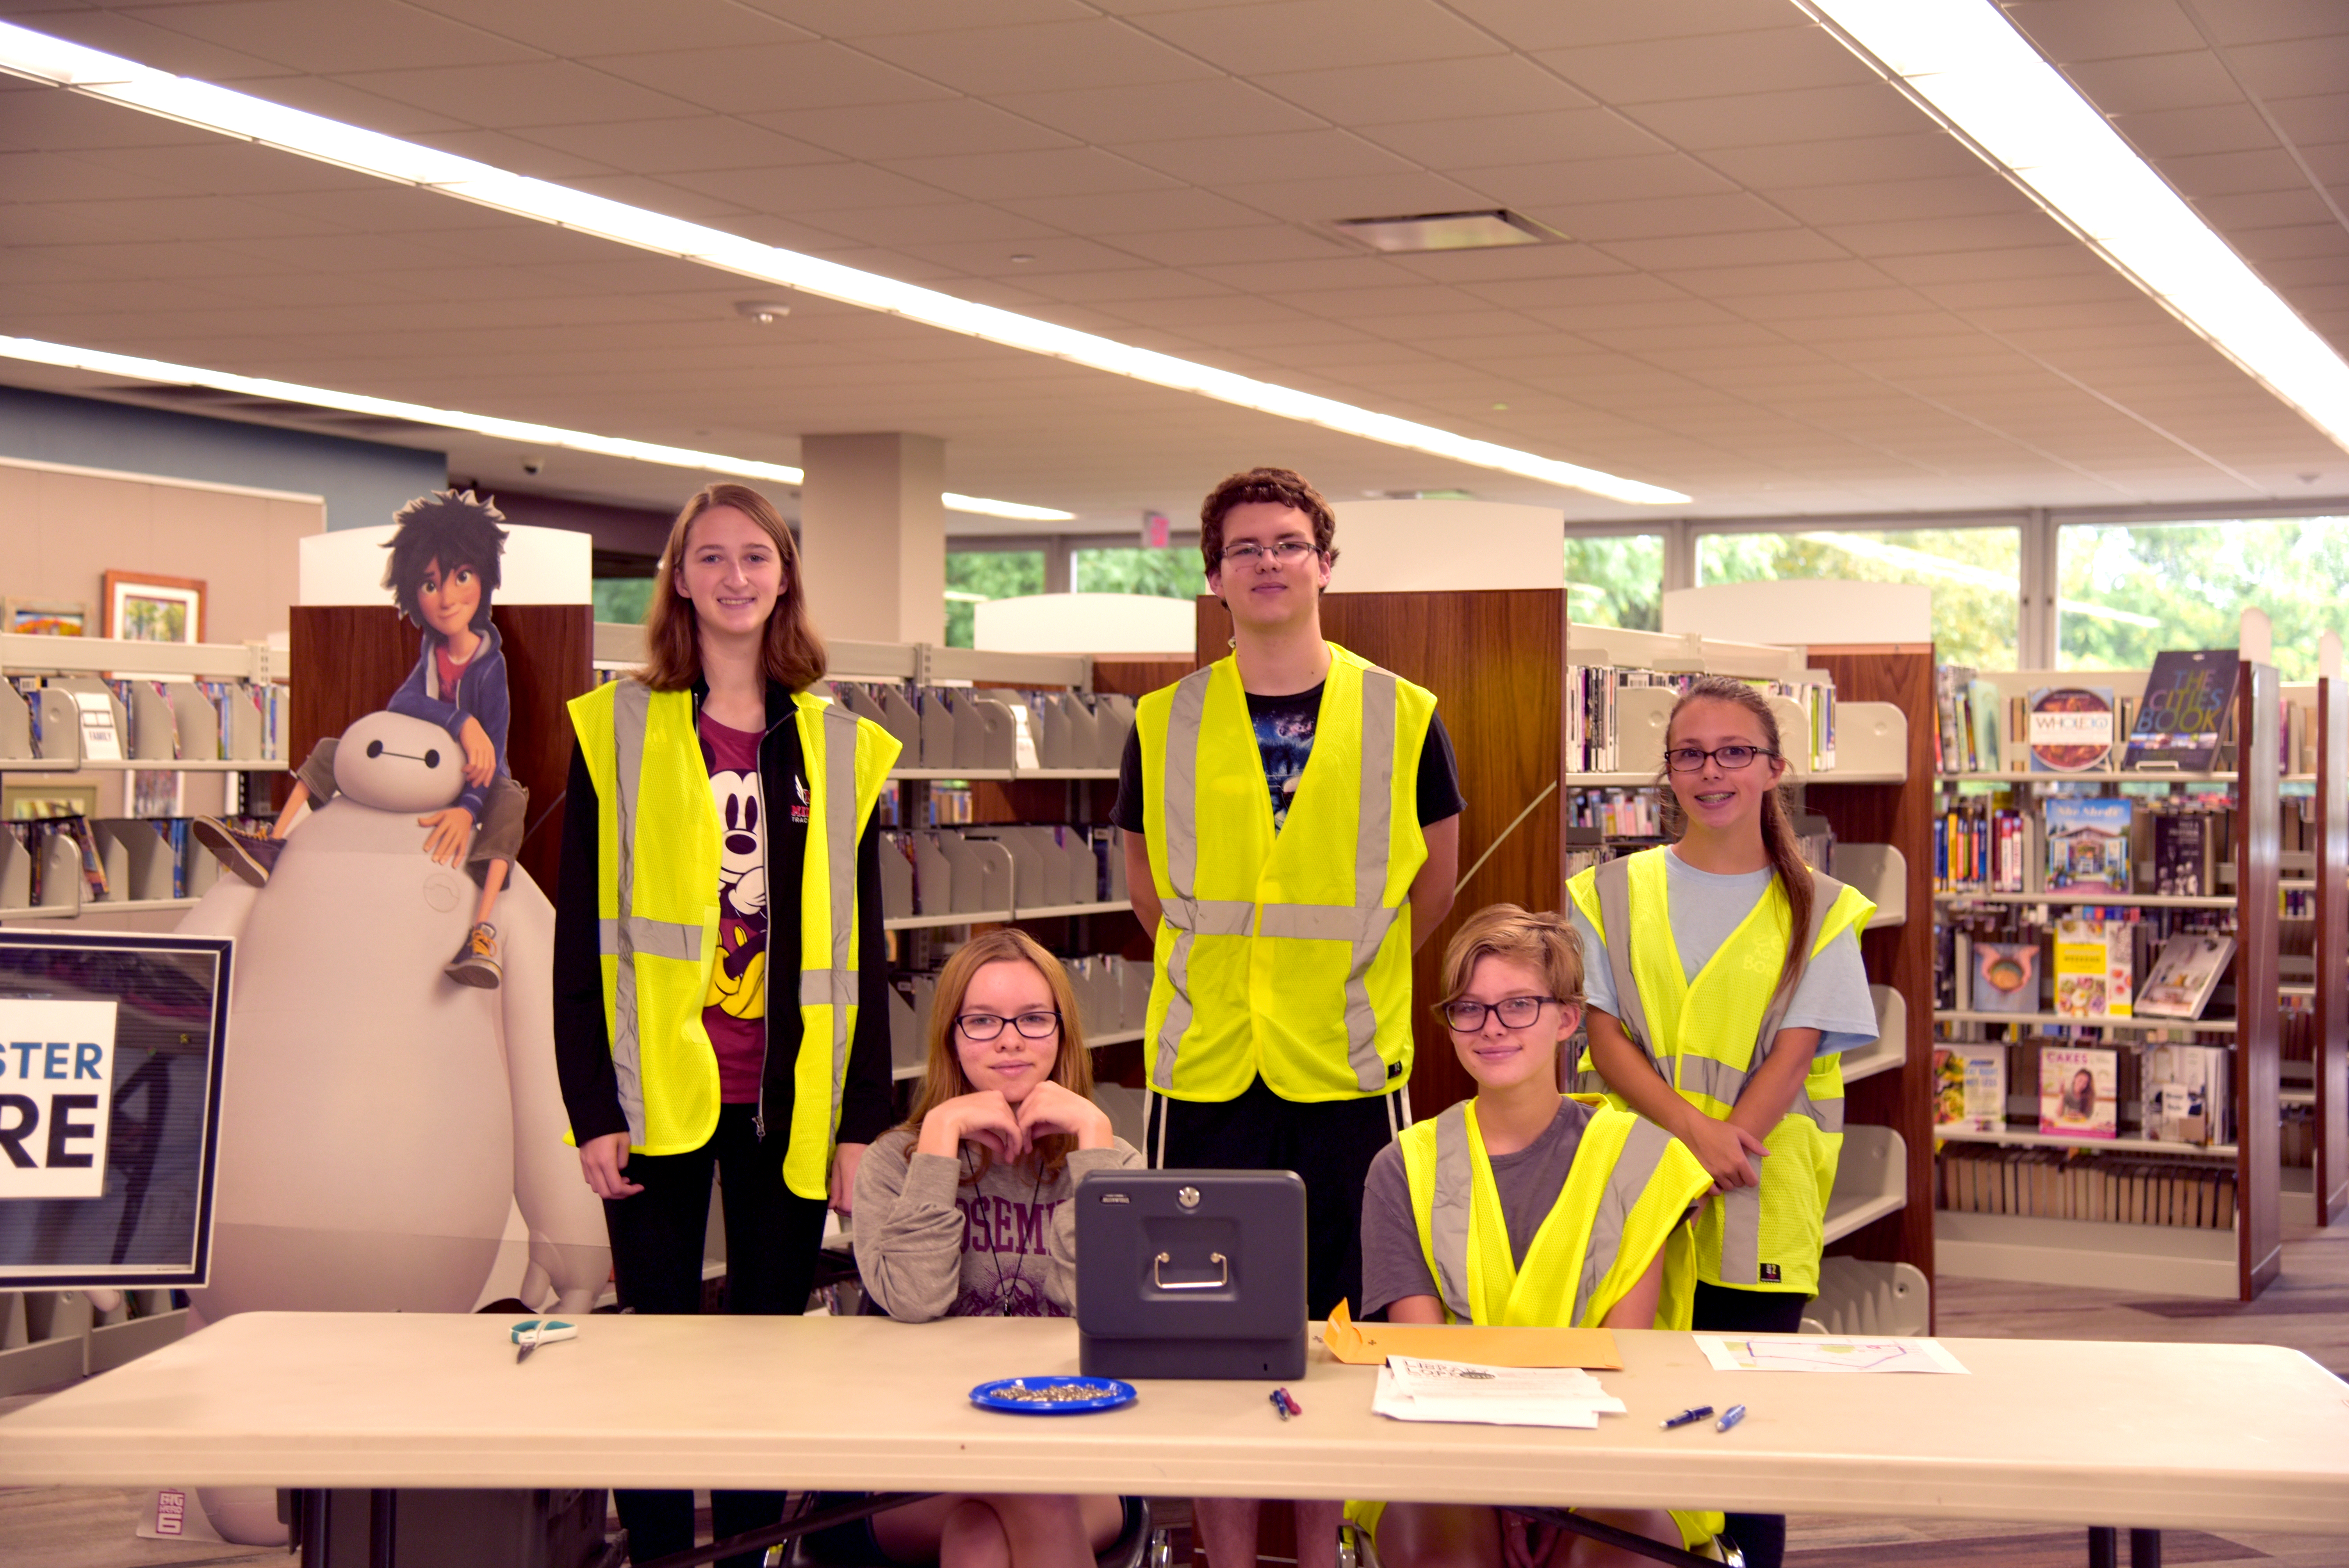 TAB Members Helping at the Library Lope. Photo Credit: Lee Ann Hare